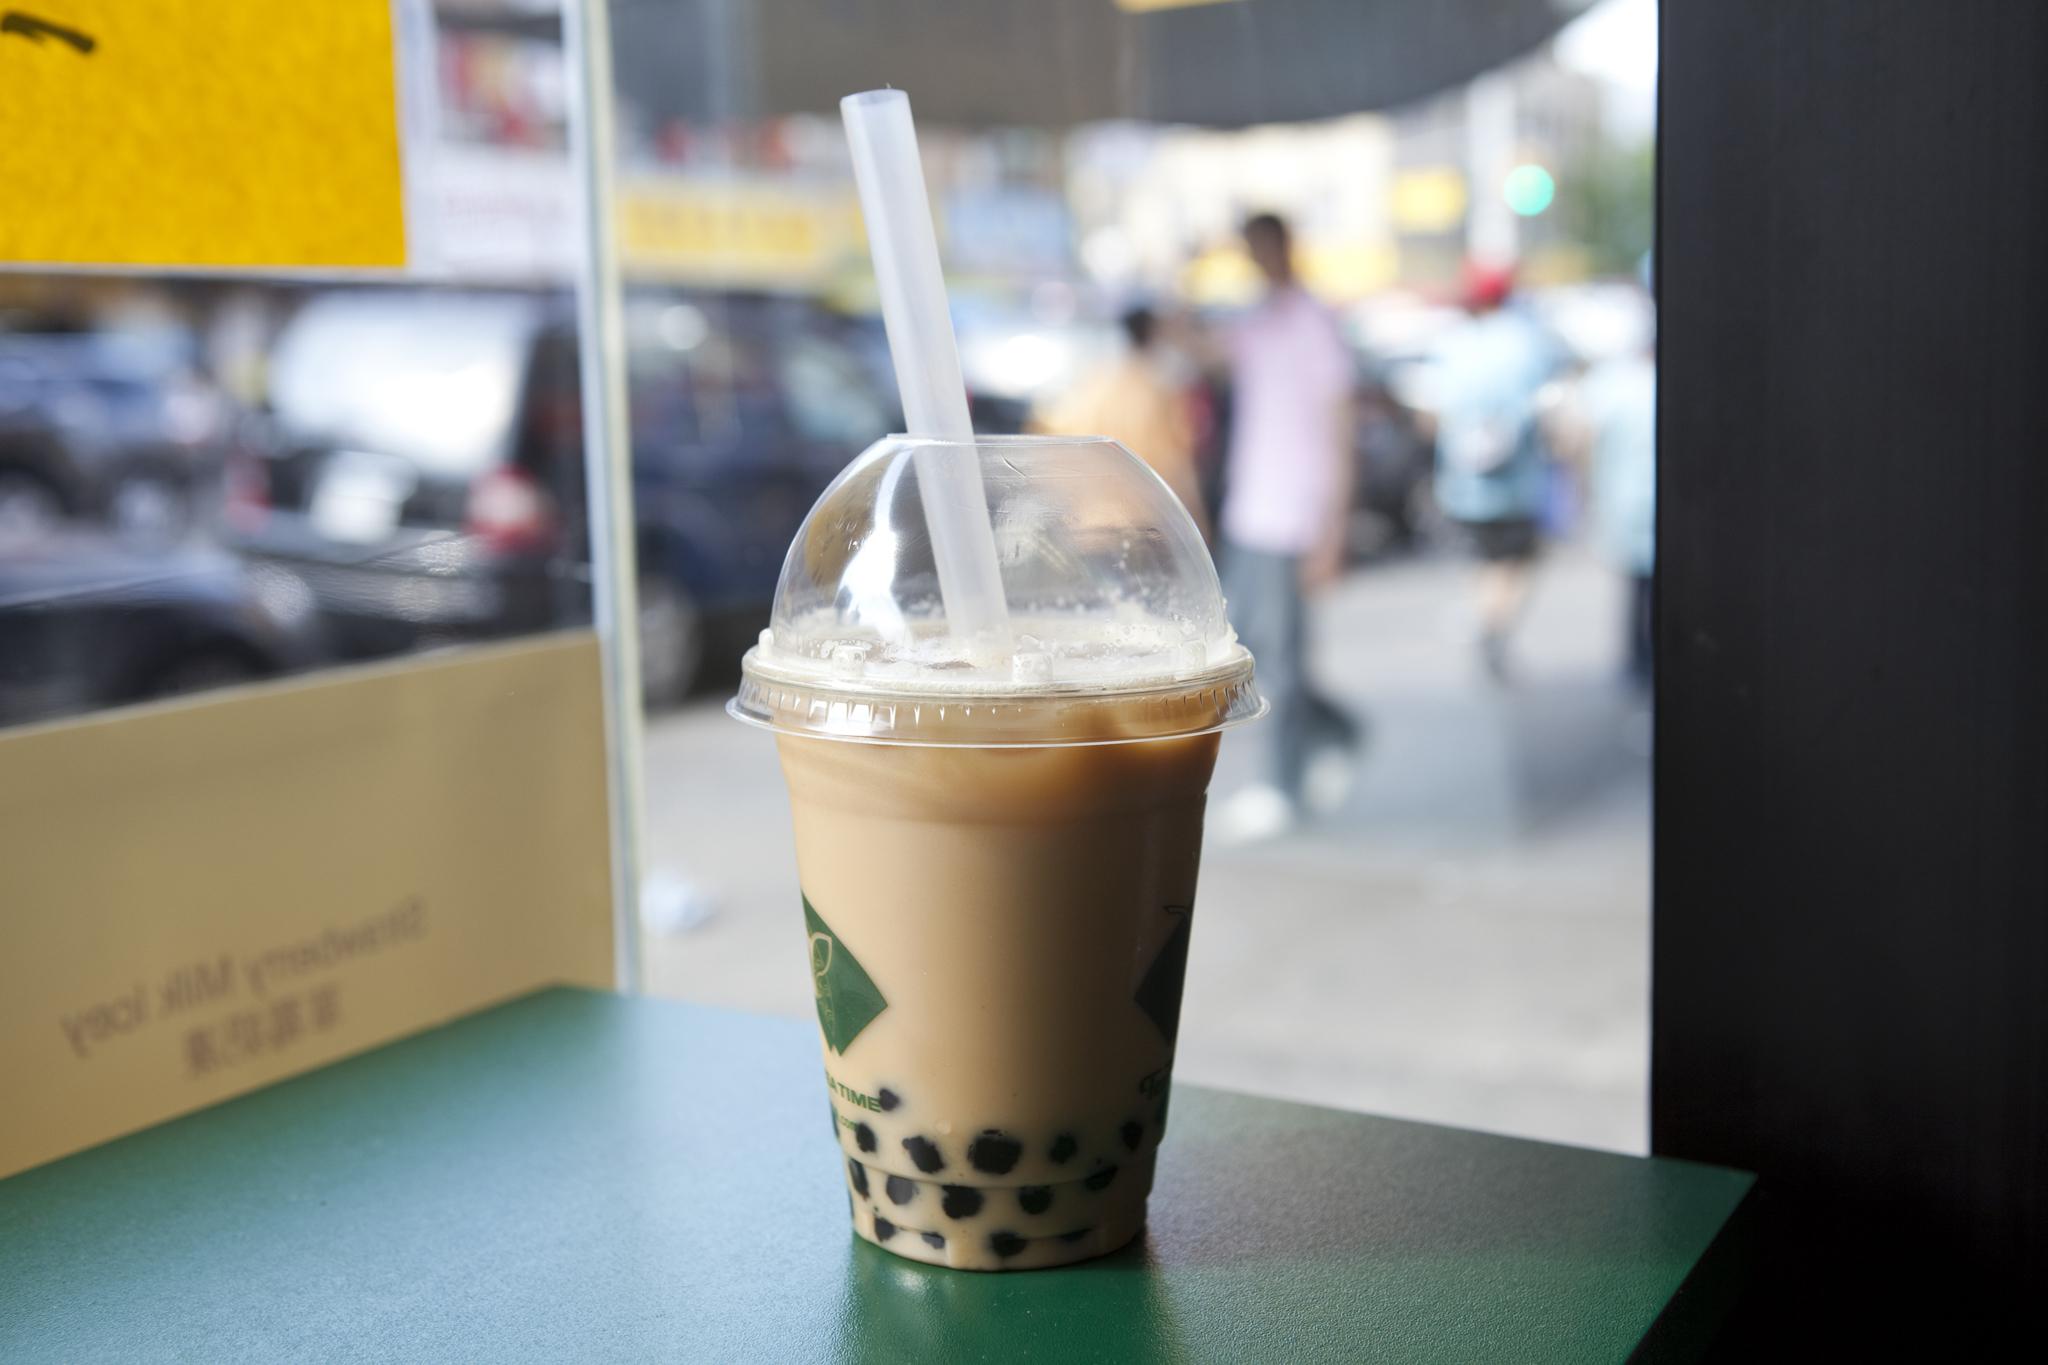 Bubble tea: Ten Ren Tea